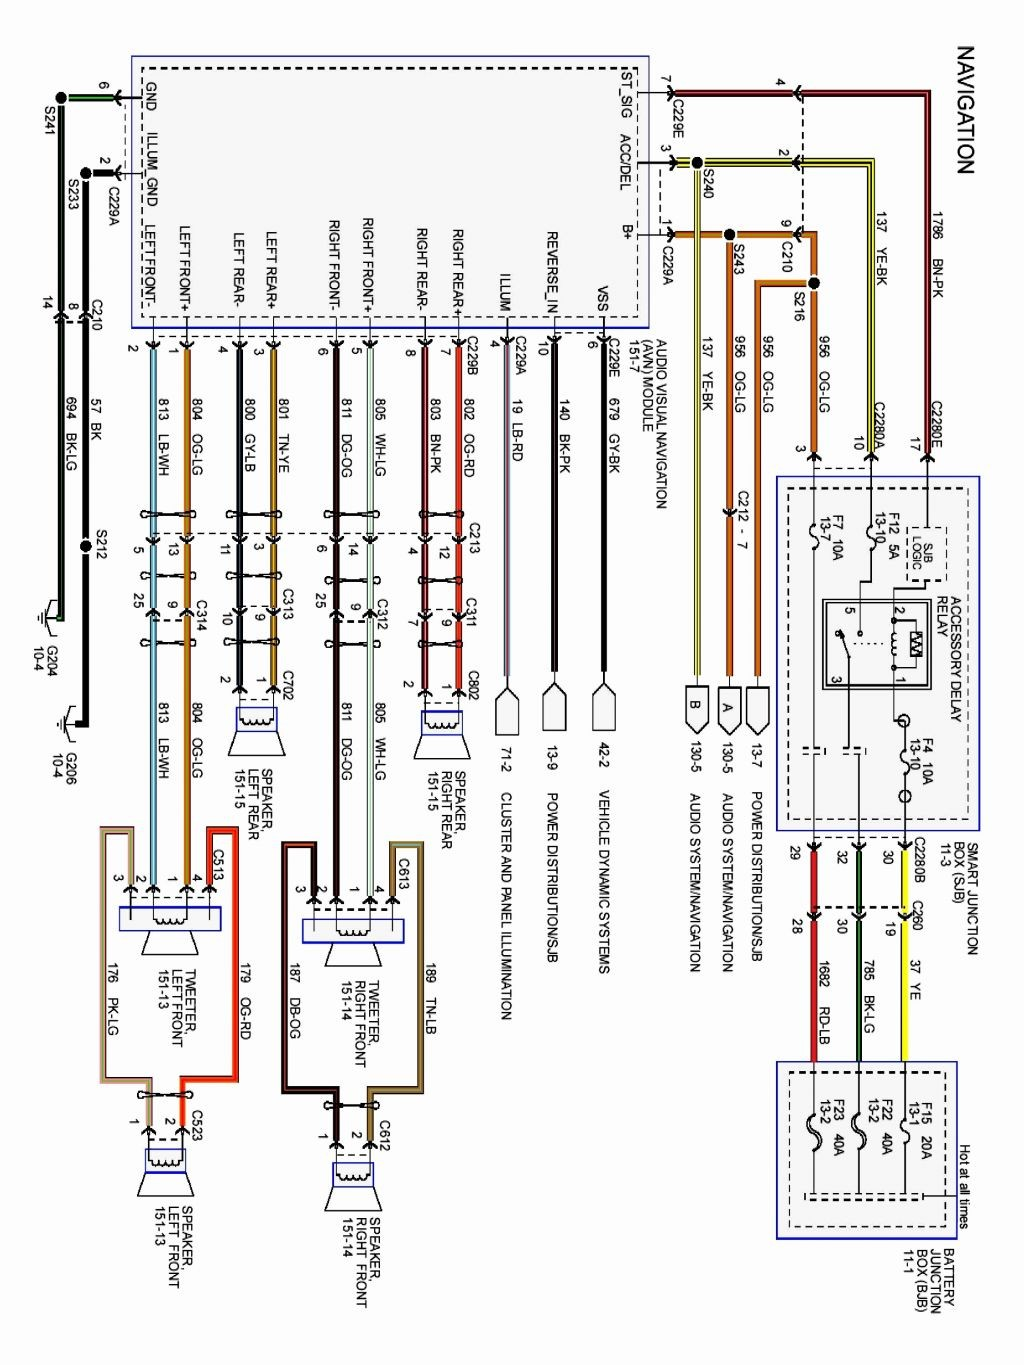 2006 Ford Taurus Wiring Diagram from static-cdn.imageservice.cloud